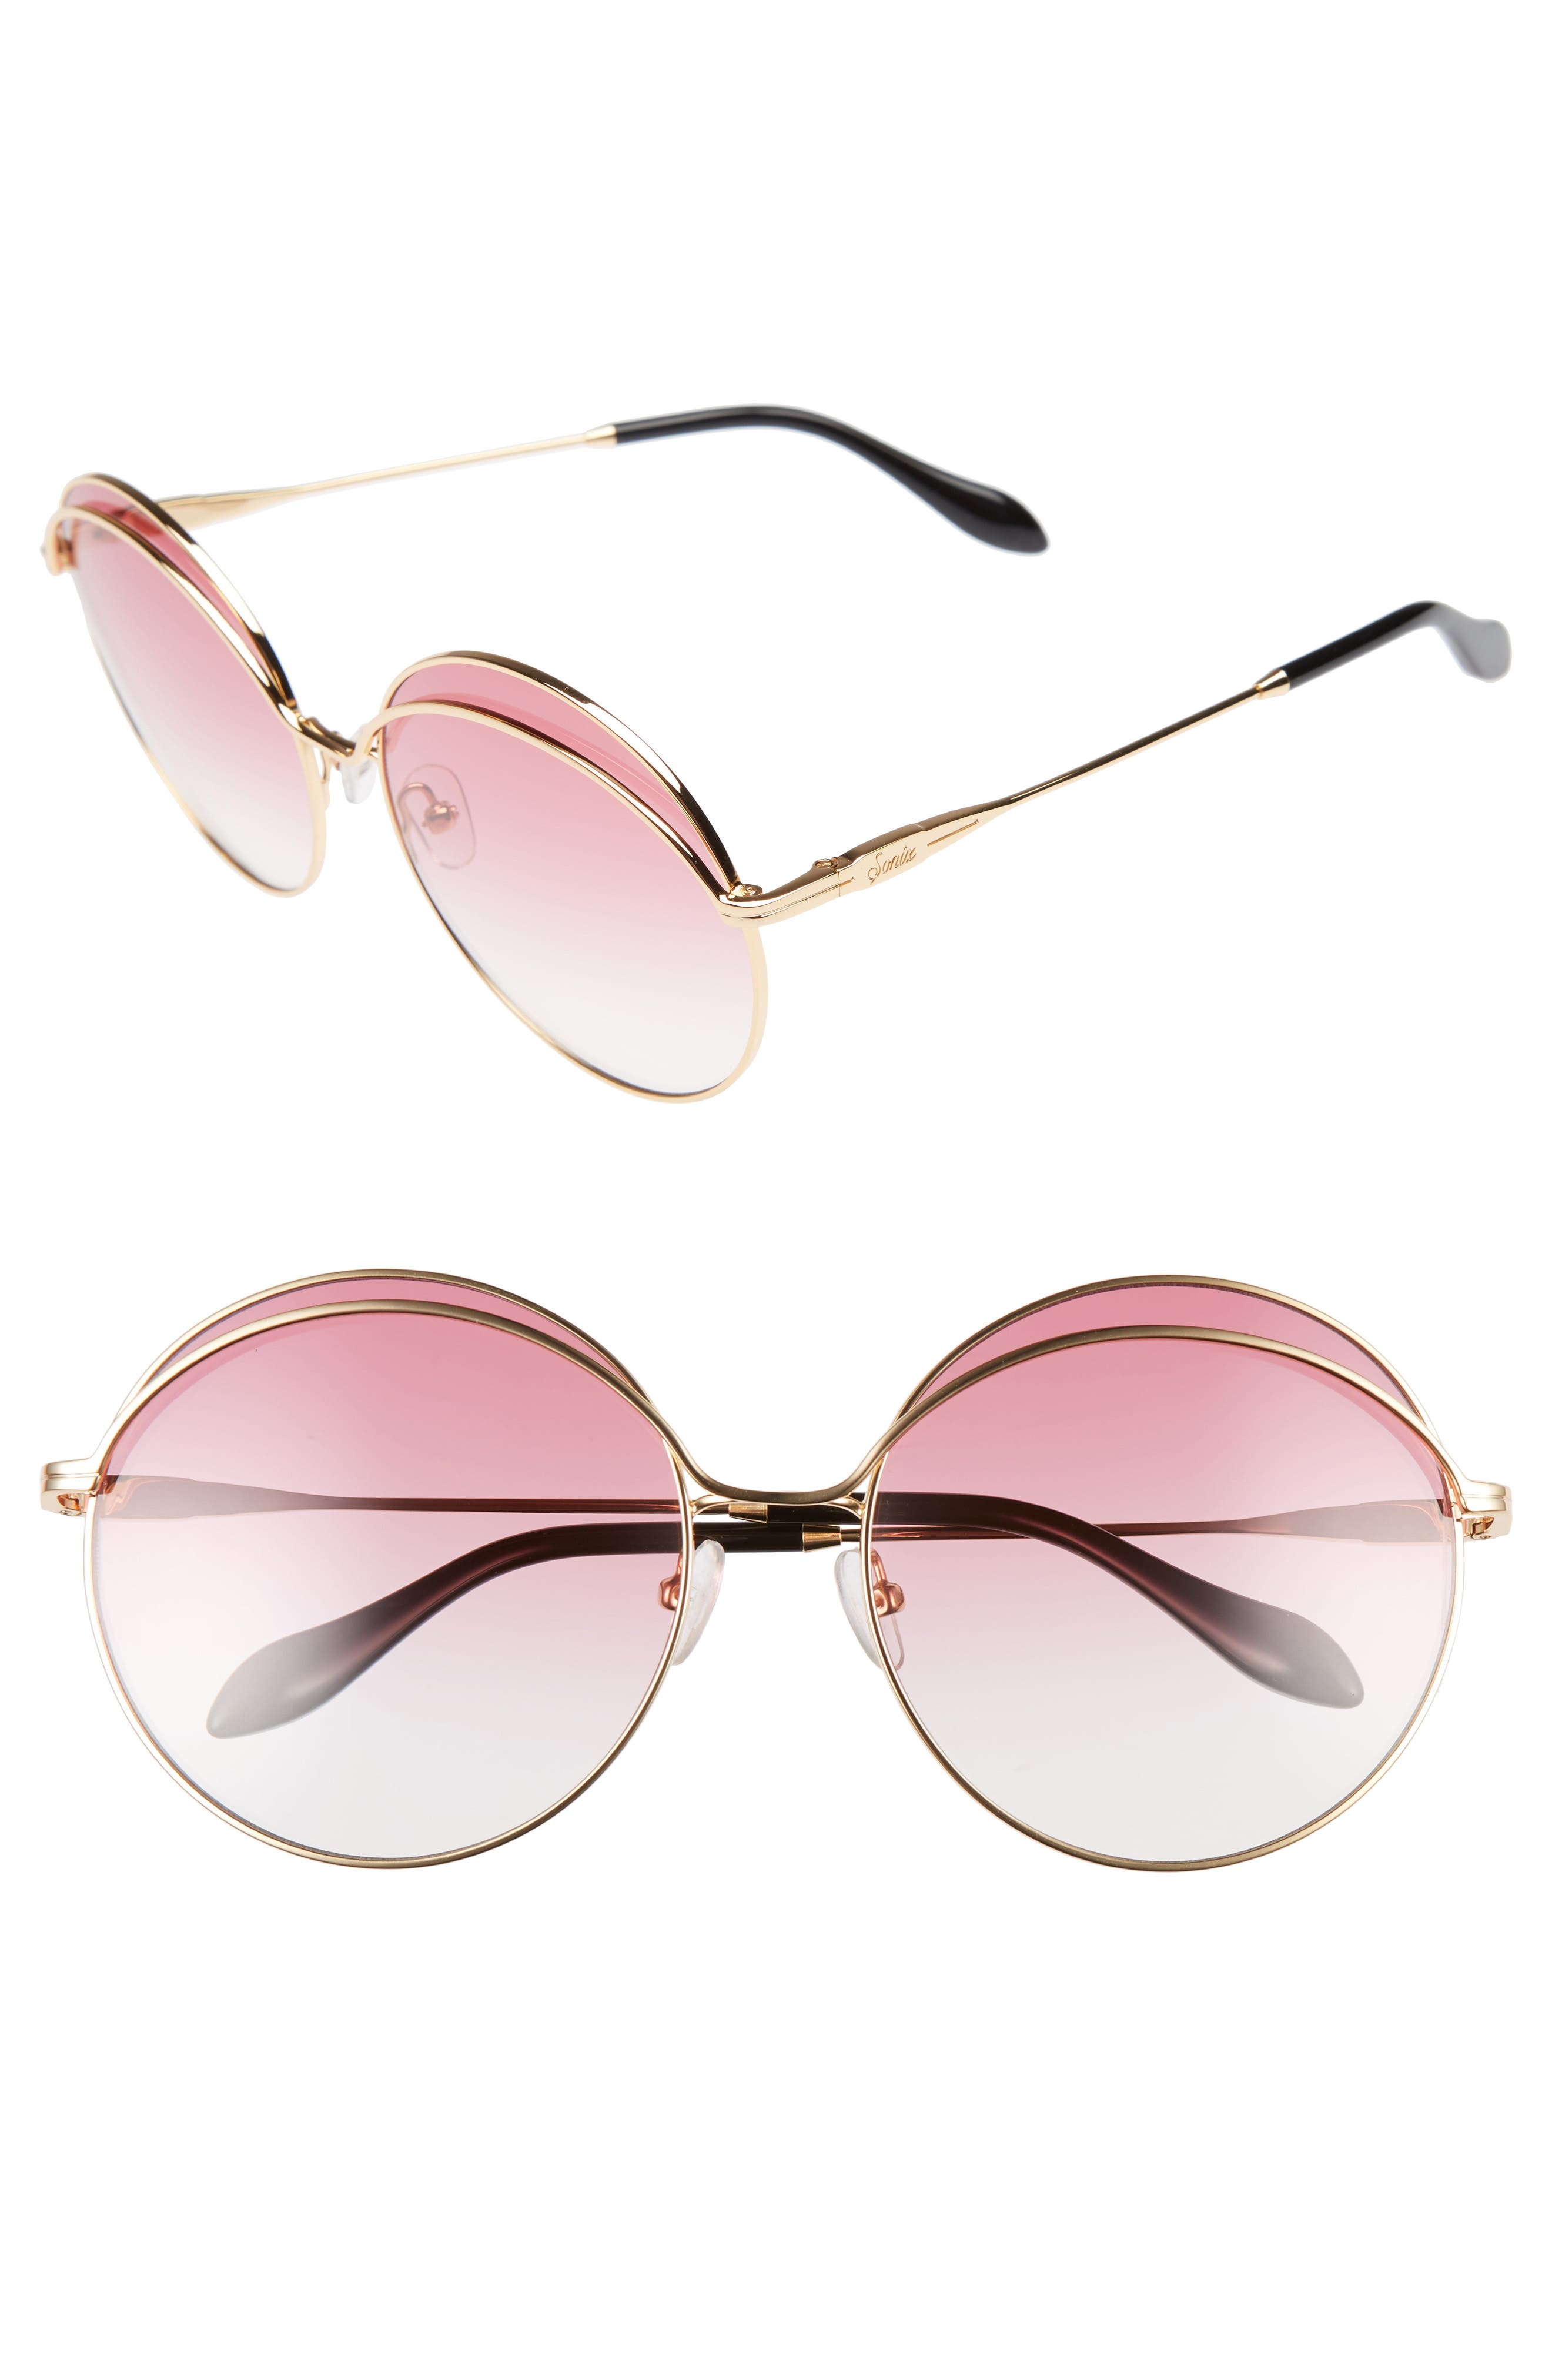 Oasis 63mm Round Sunglasses,                         Main,                         color, Gold Wire/ Rouge Tint